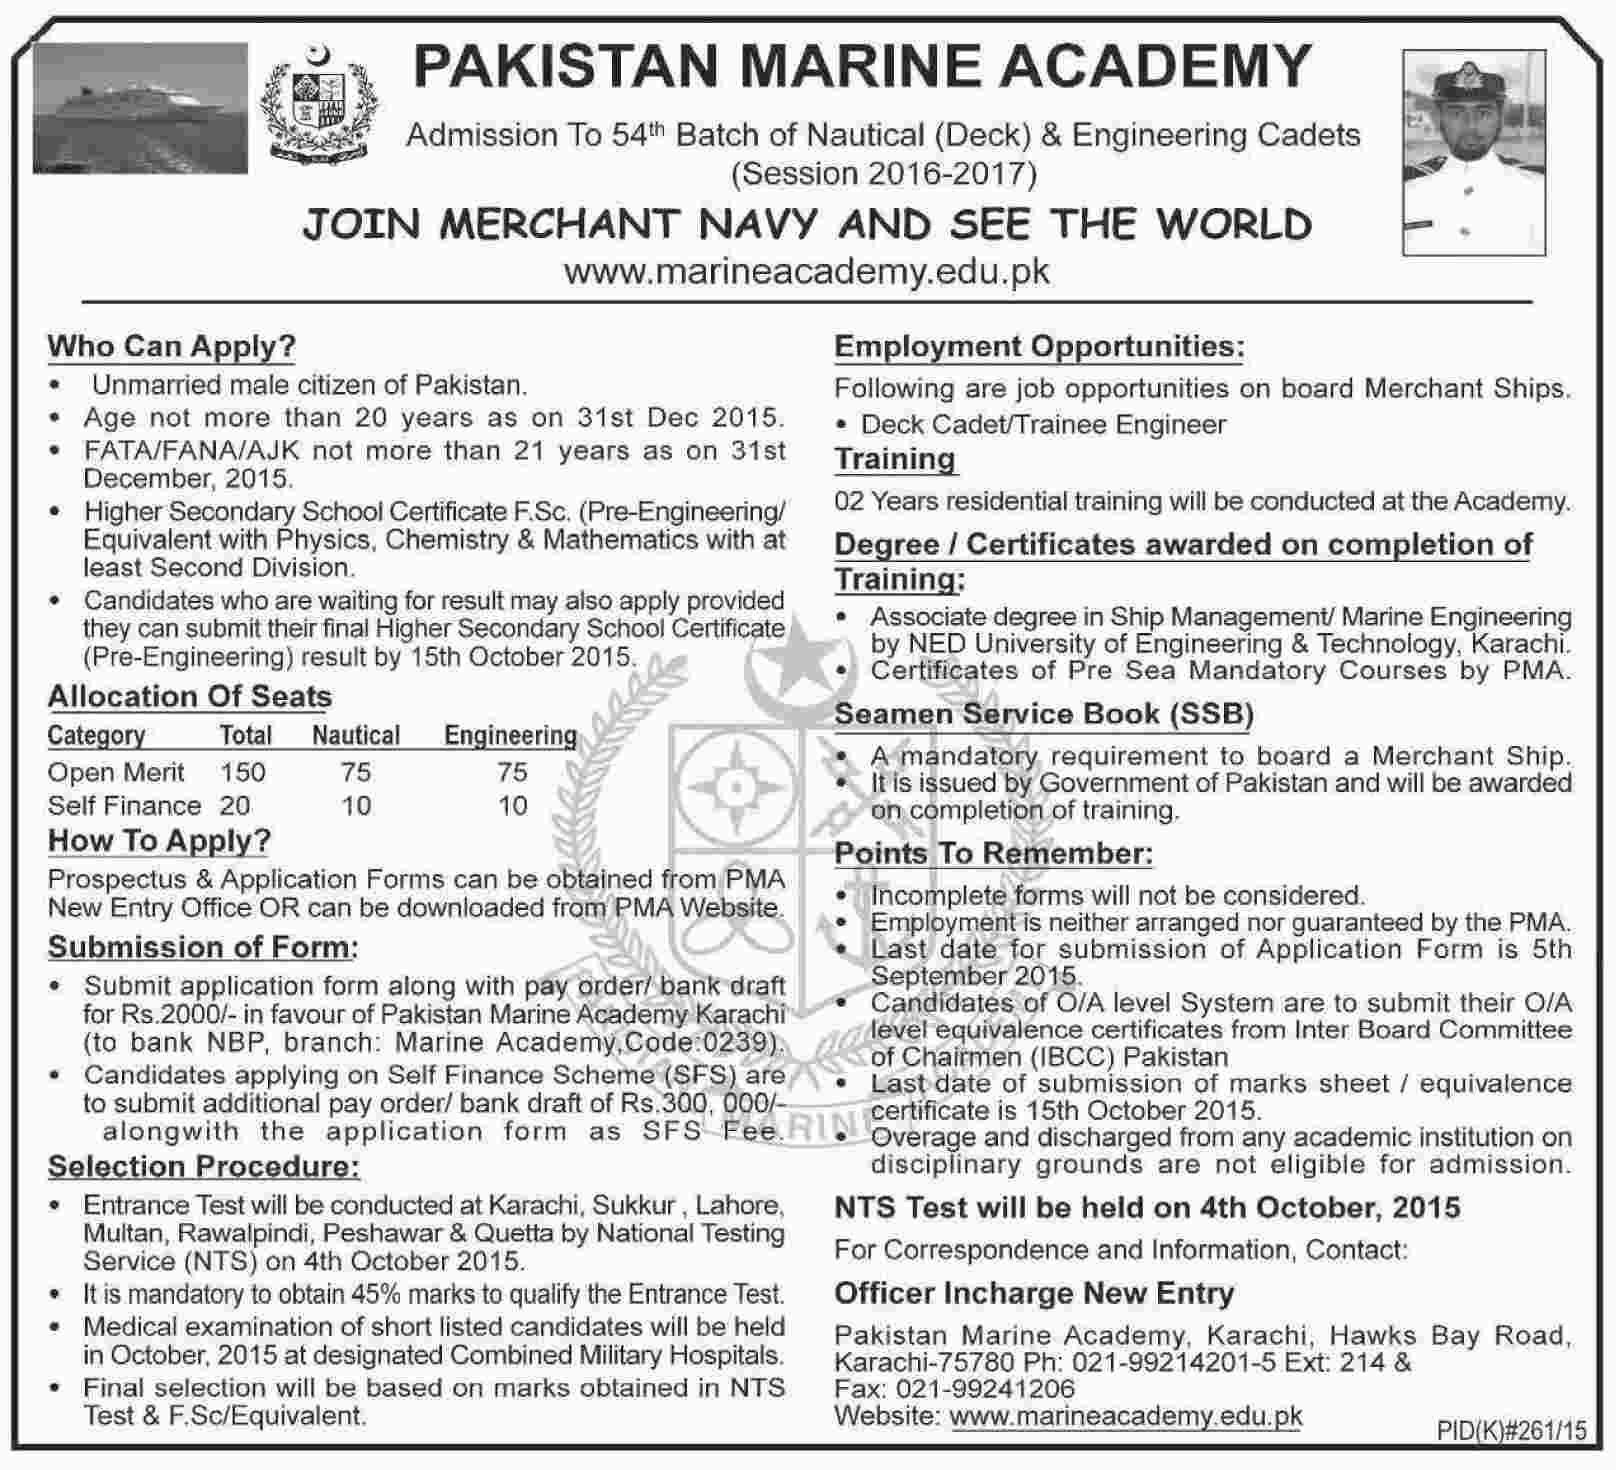 Pakistan Marine Academy Karachi Jobs 2015 54th Batch Nautical, Engineering Cadets